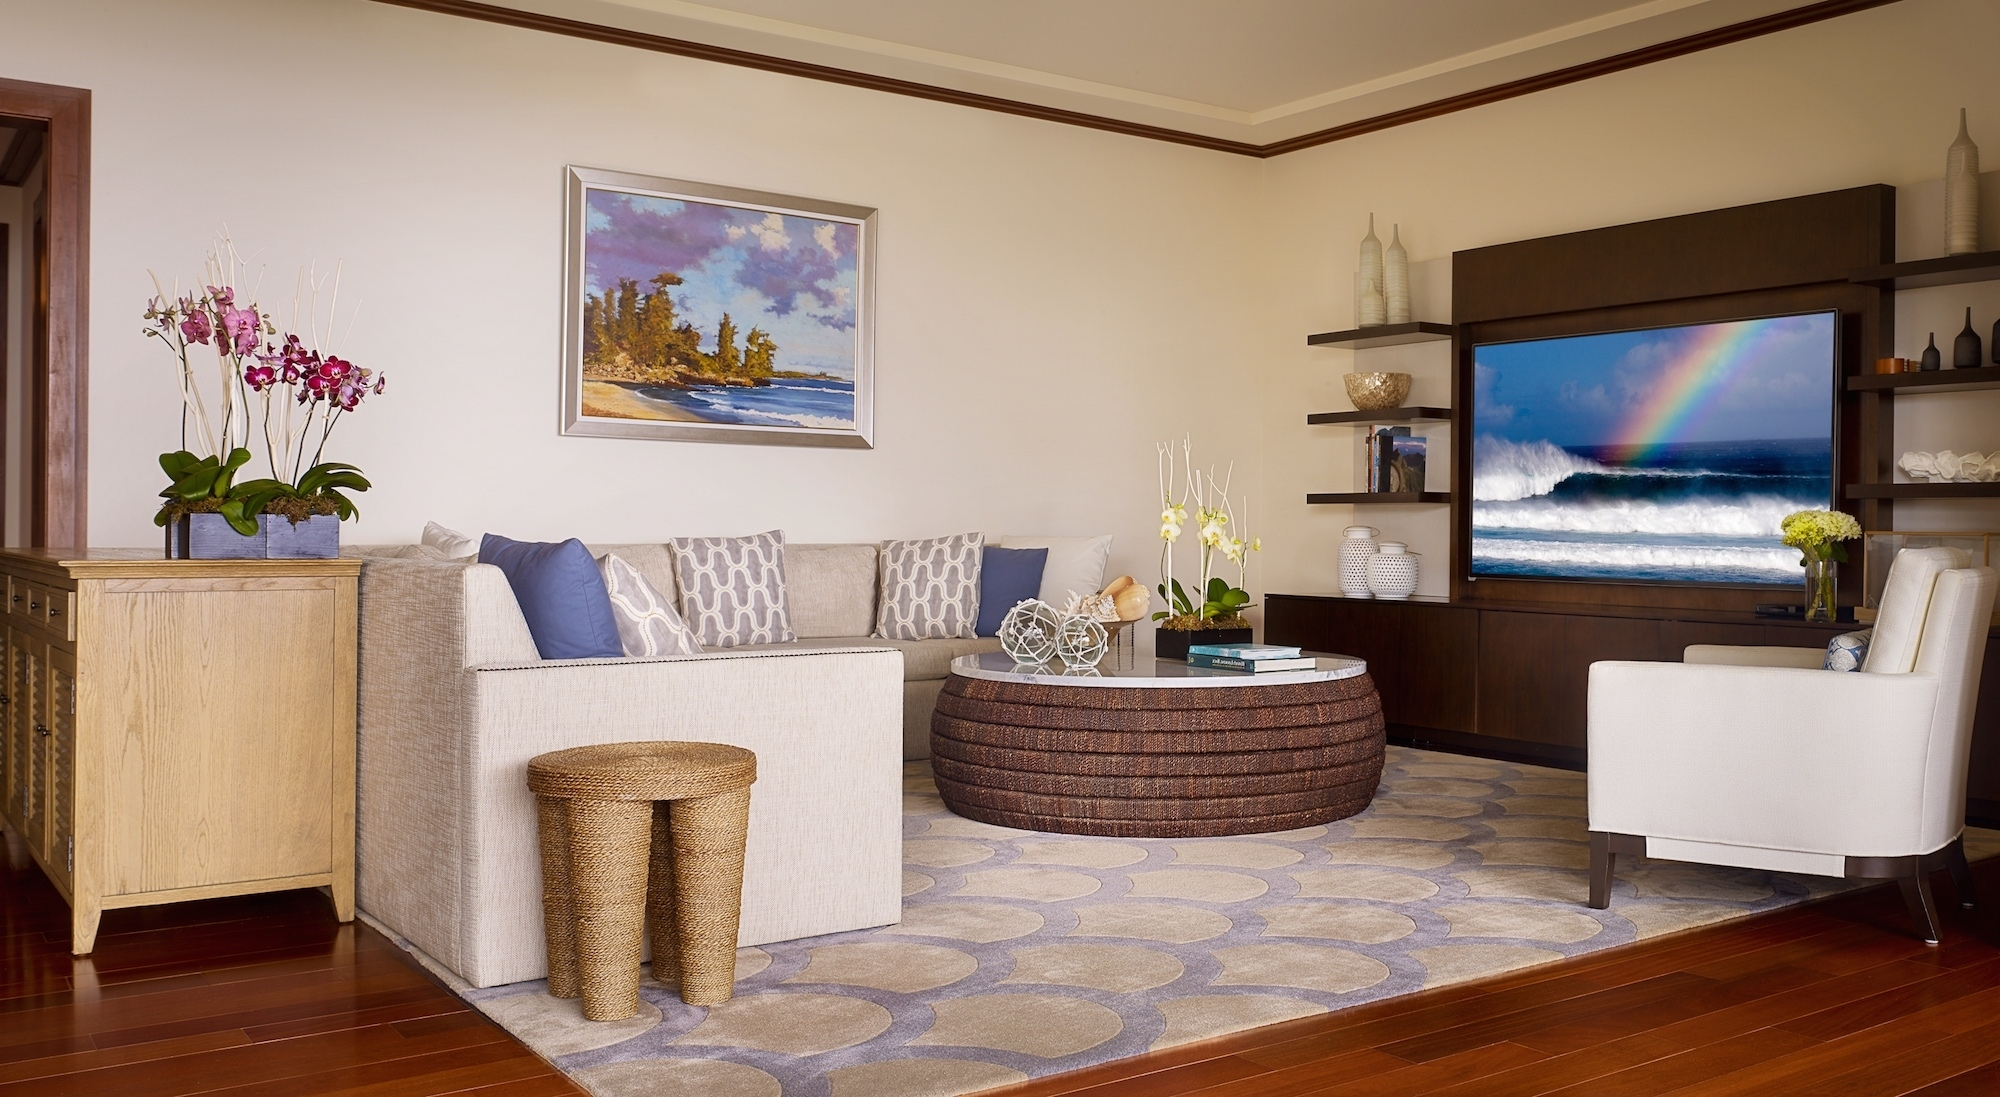 Most Popular Living Room Design Pictures Featuring Hawaiian Style Decor And Inside Hawaii Sectional Sofas (View 18 of 20)